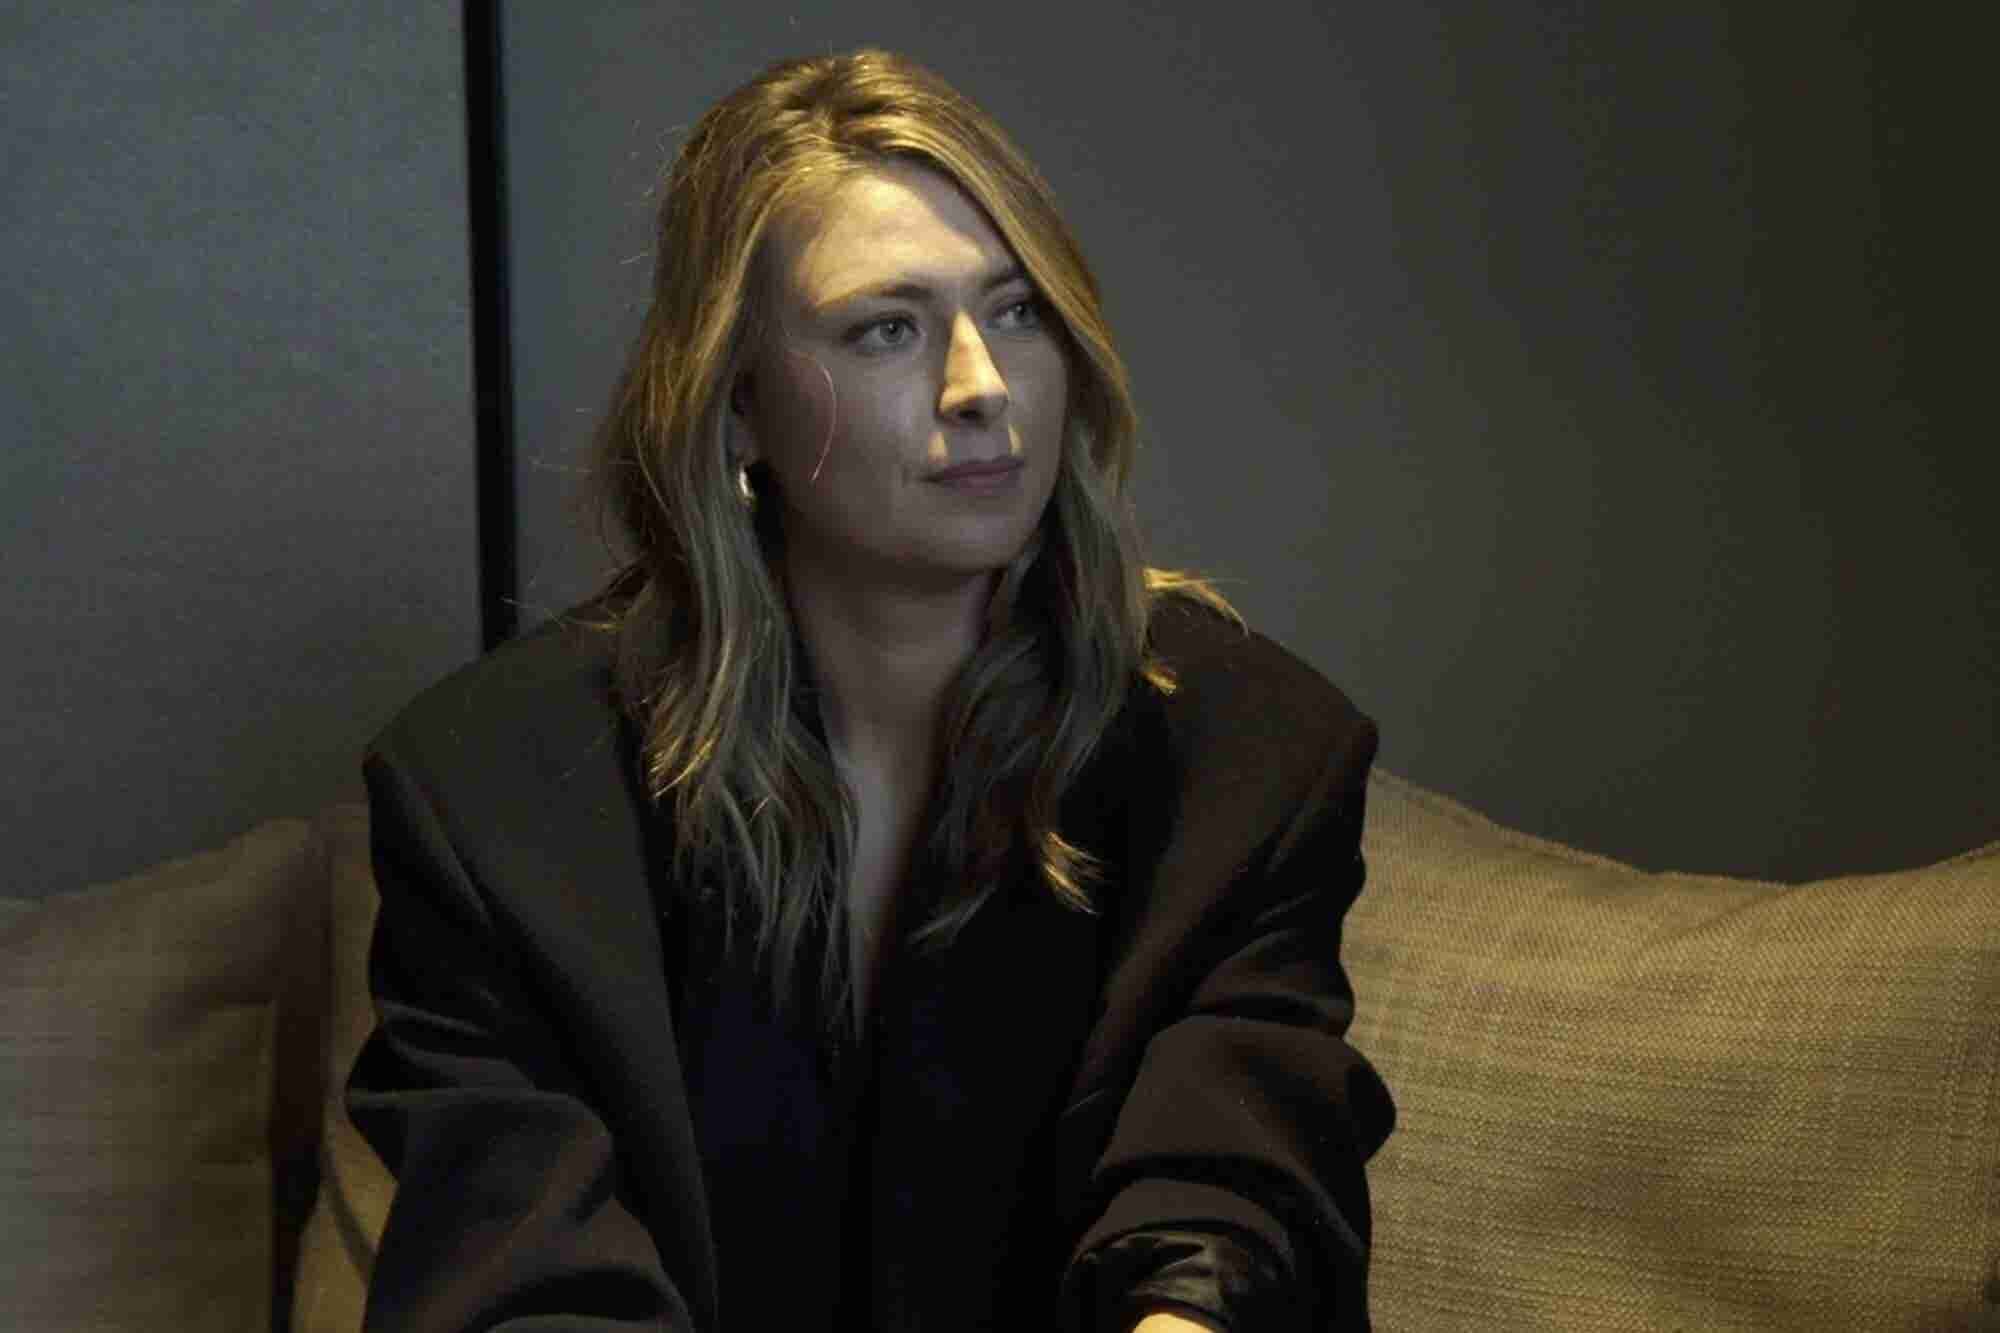 Maria Sharapova: Serving Up Knowledge and Inspiring Female Entrepreneurs